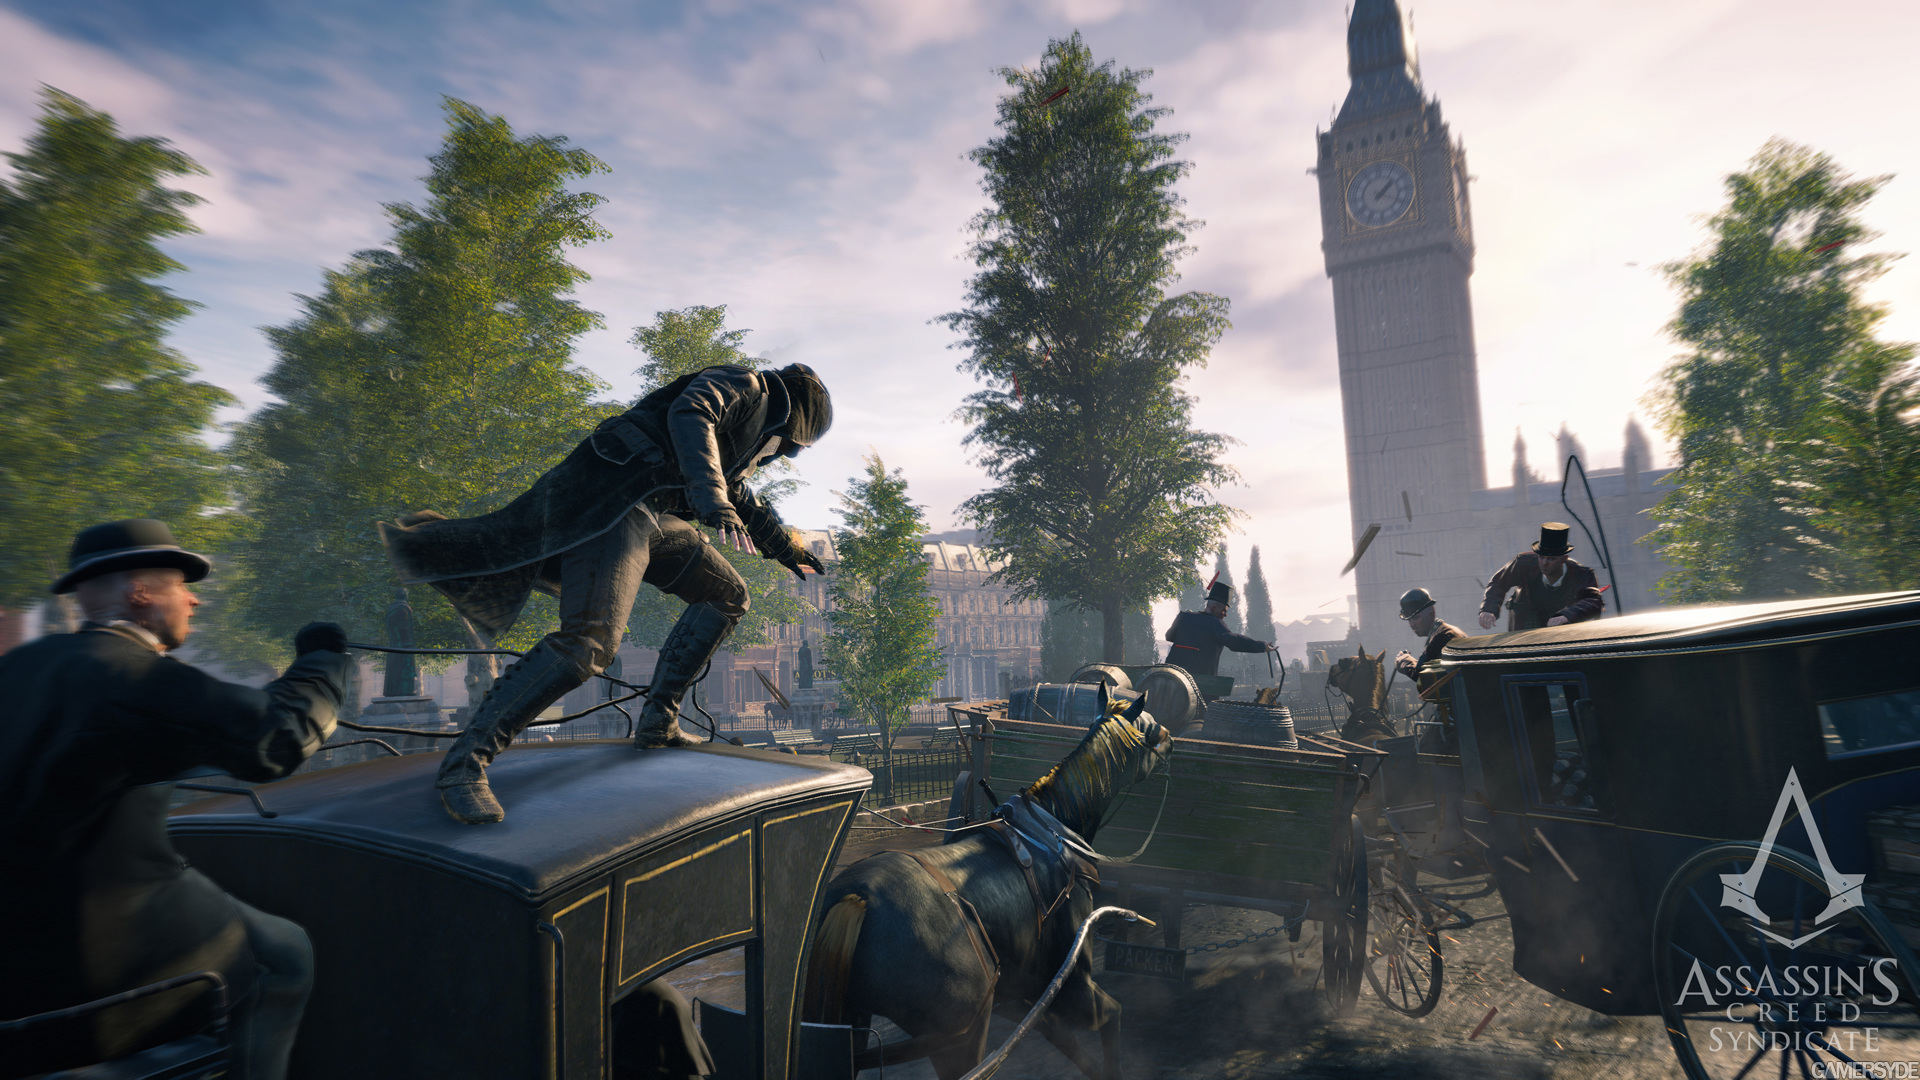 image_assassin_s_creed_syndicate-28271-3228_0006